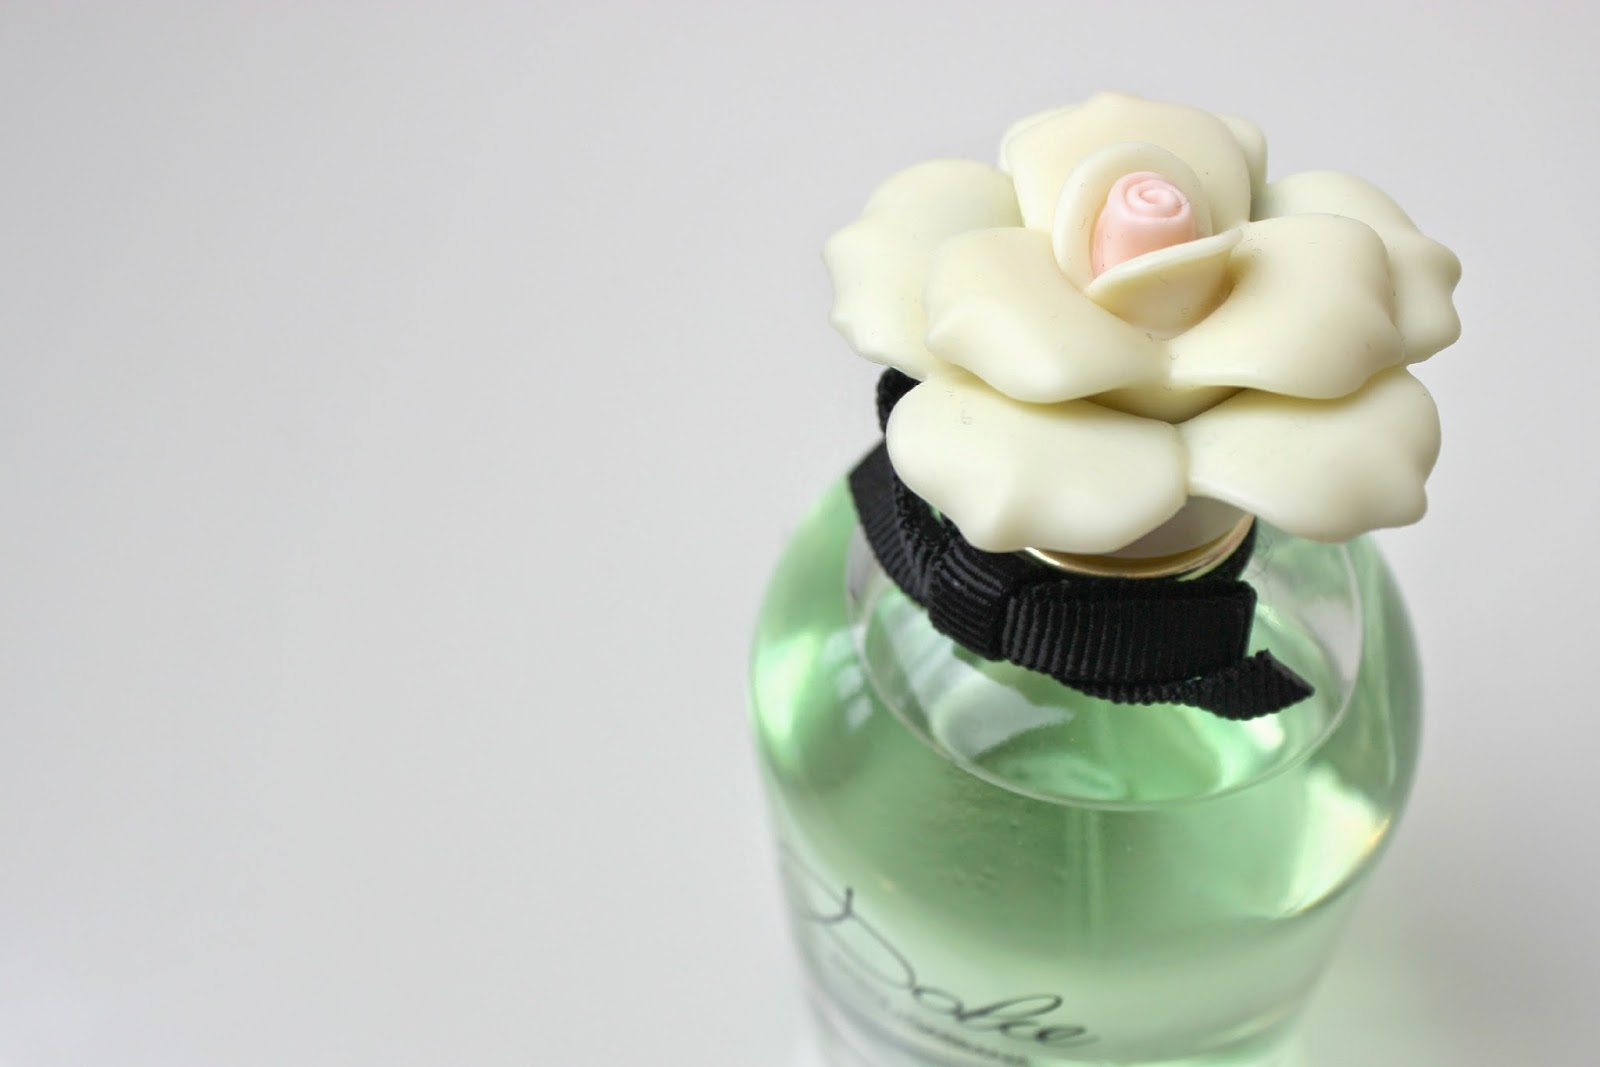 A picture of Dolce by Dolce & Gabbana Eau de Parfum Spray